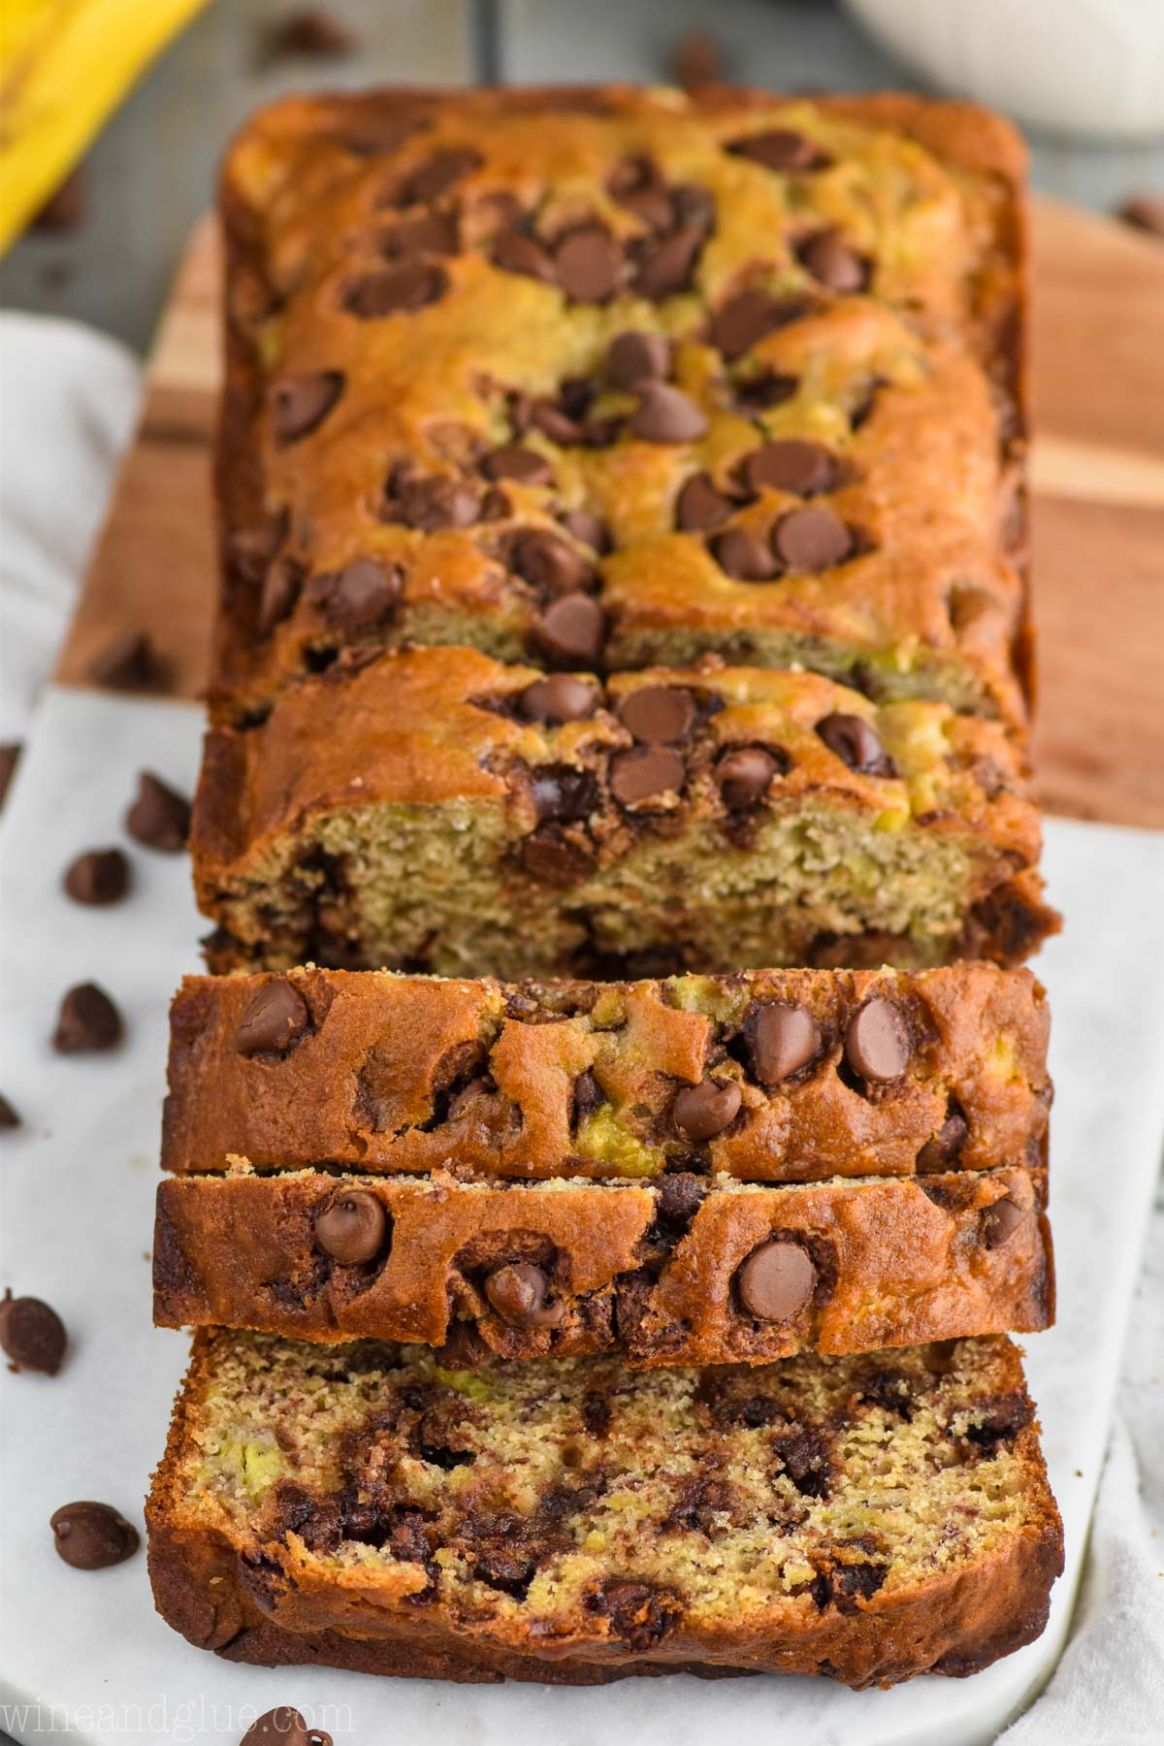 The Best Chocolate Chip Banana Bread Recipe - Recipes Chocolate Banana Bread